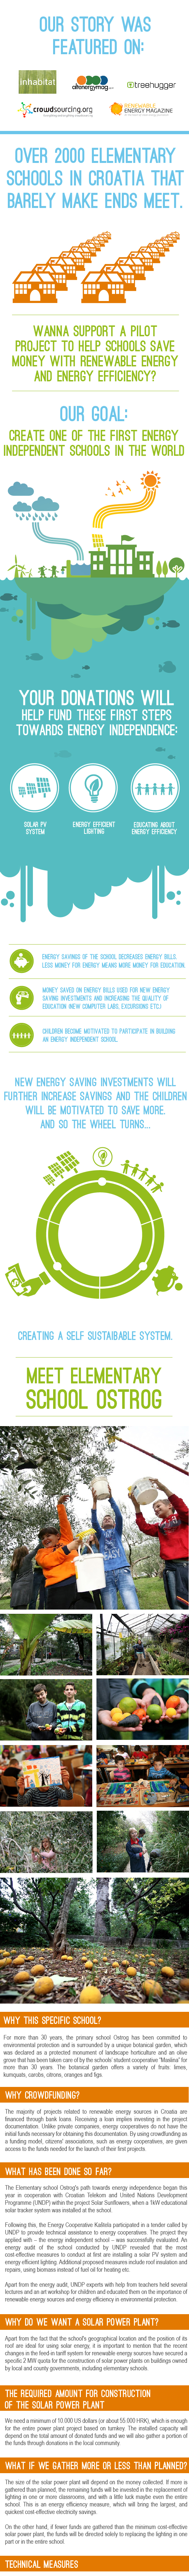 energy independent school-croatia-more than green